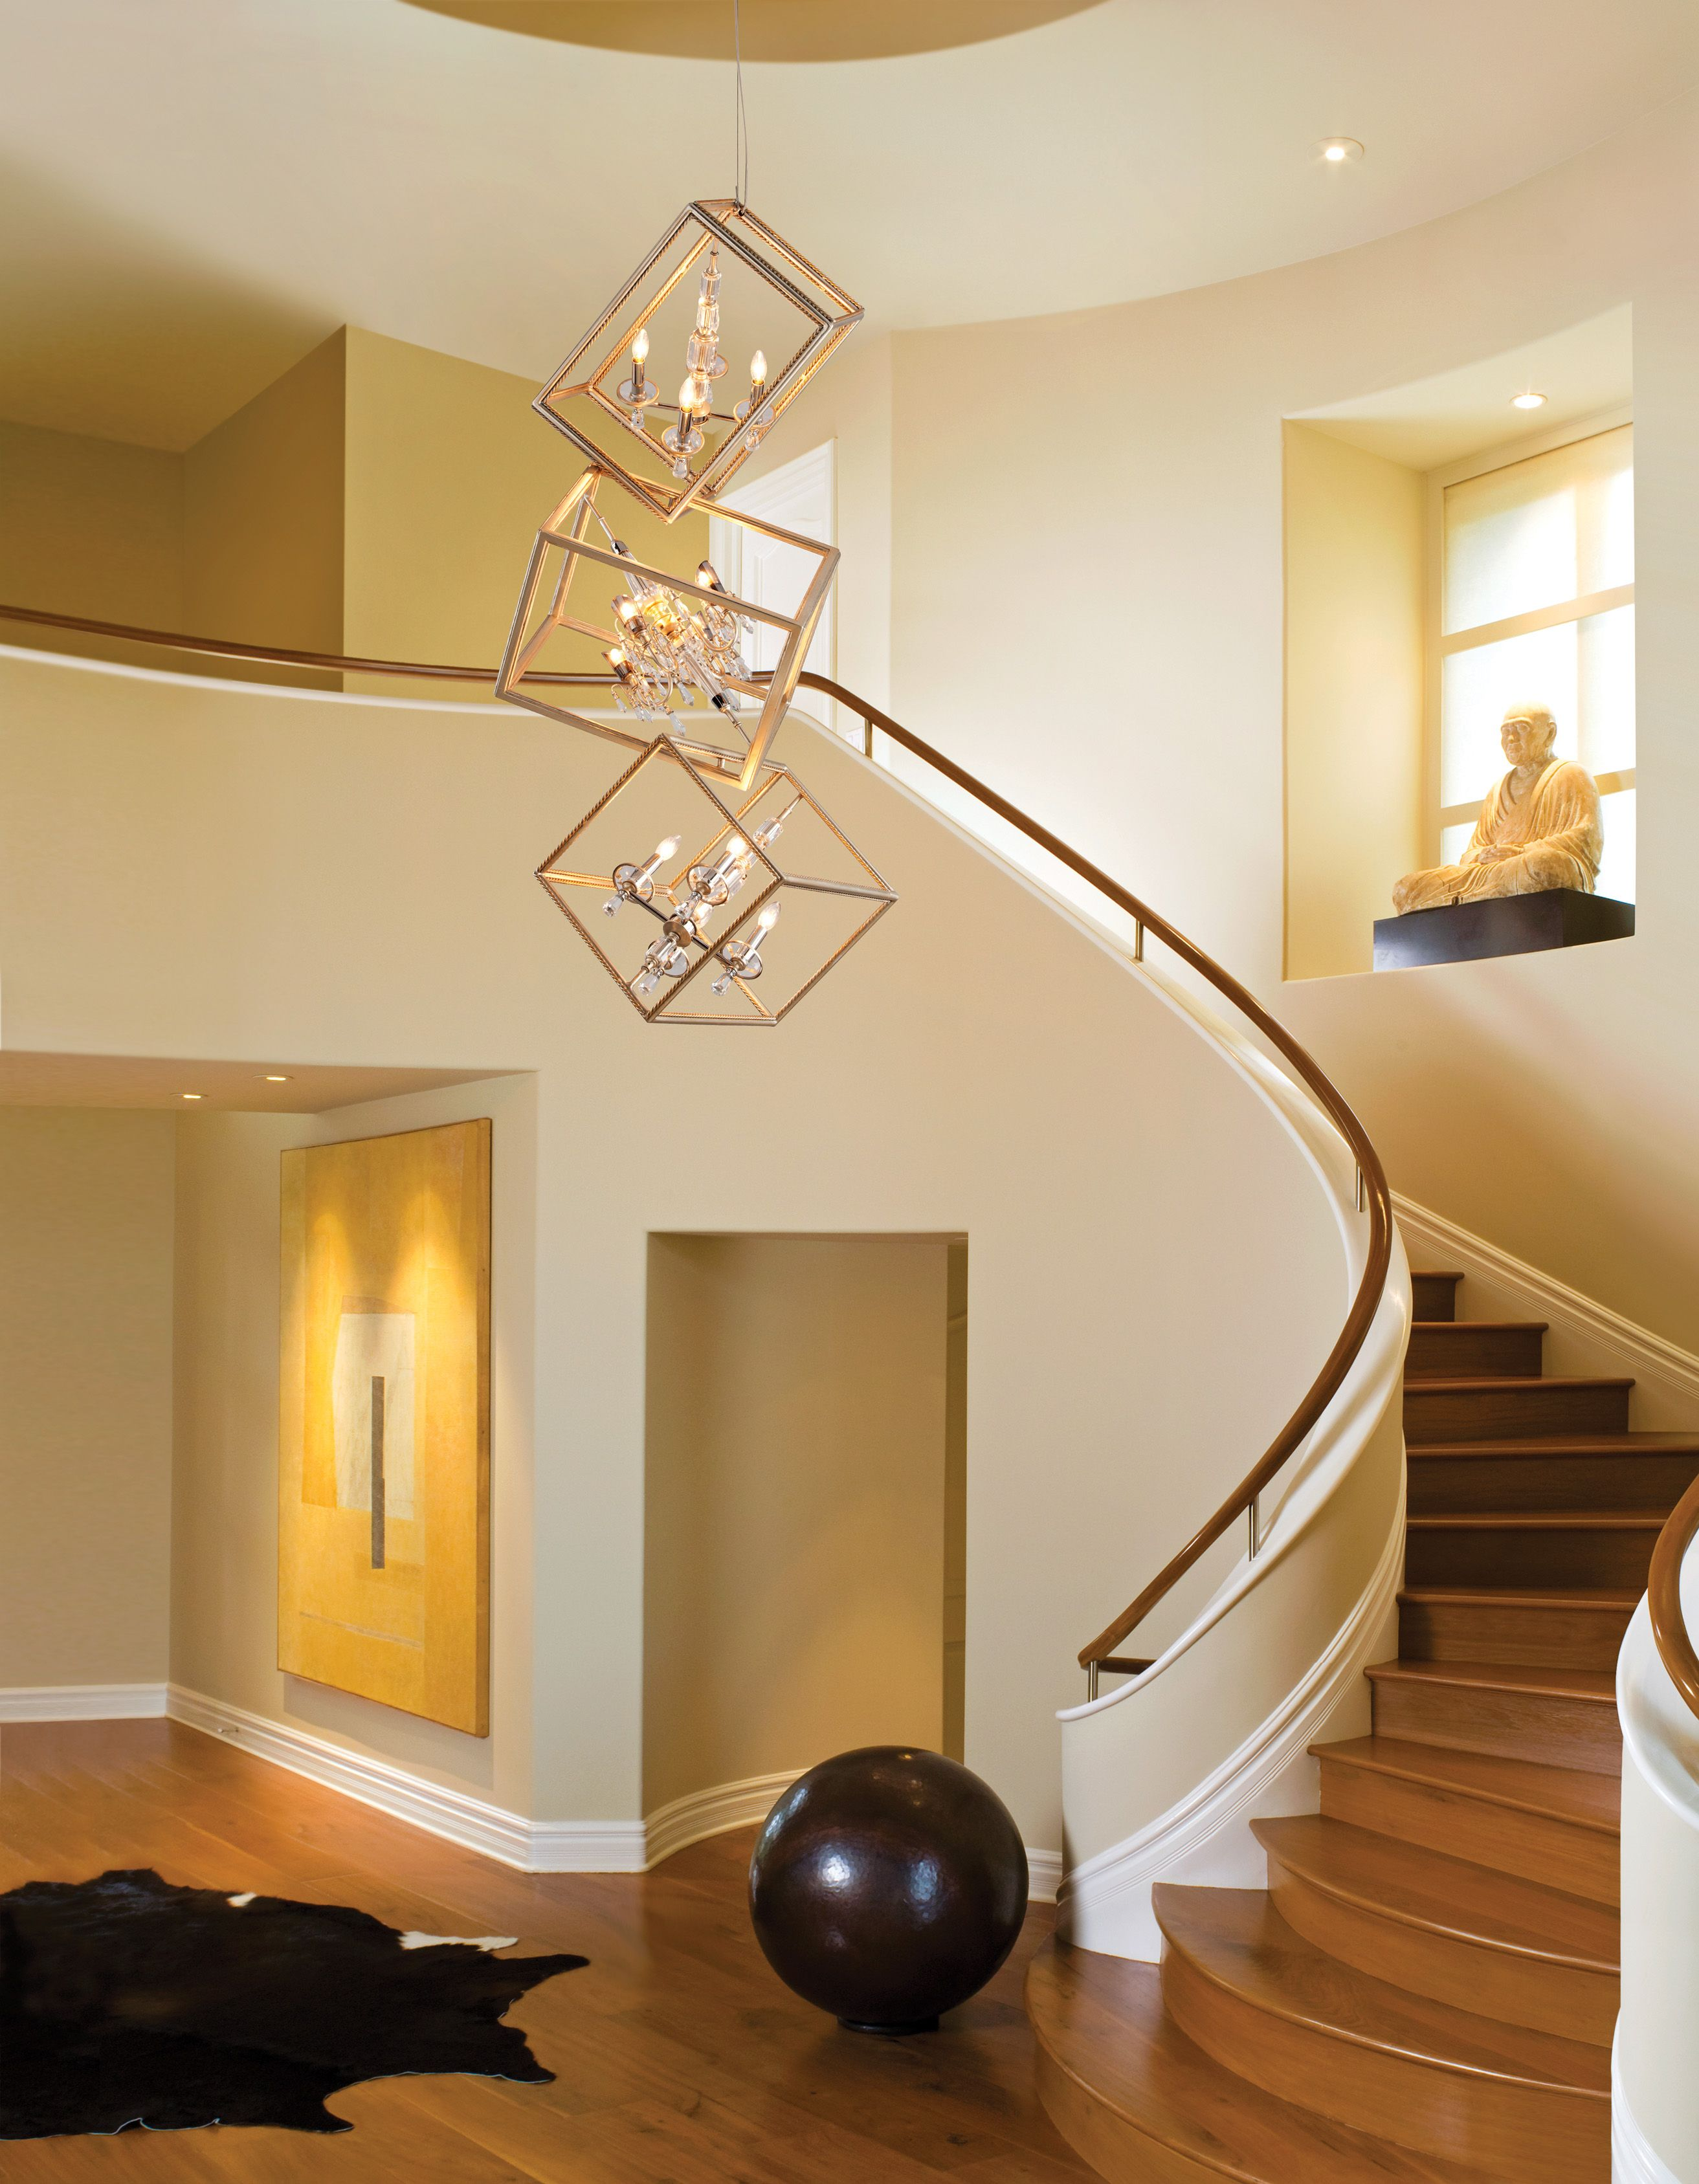 Interior Modern 2 Story Entryway Lighting Design With